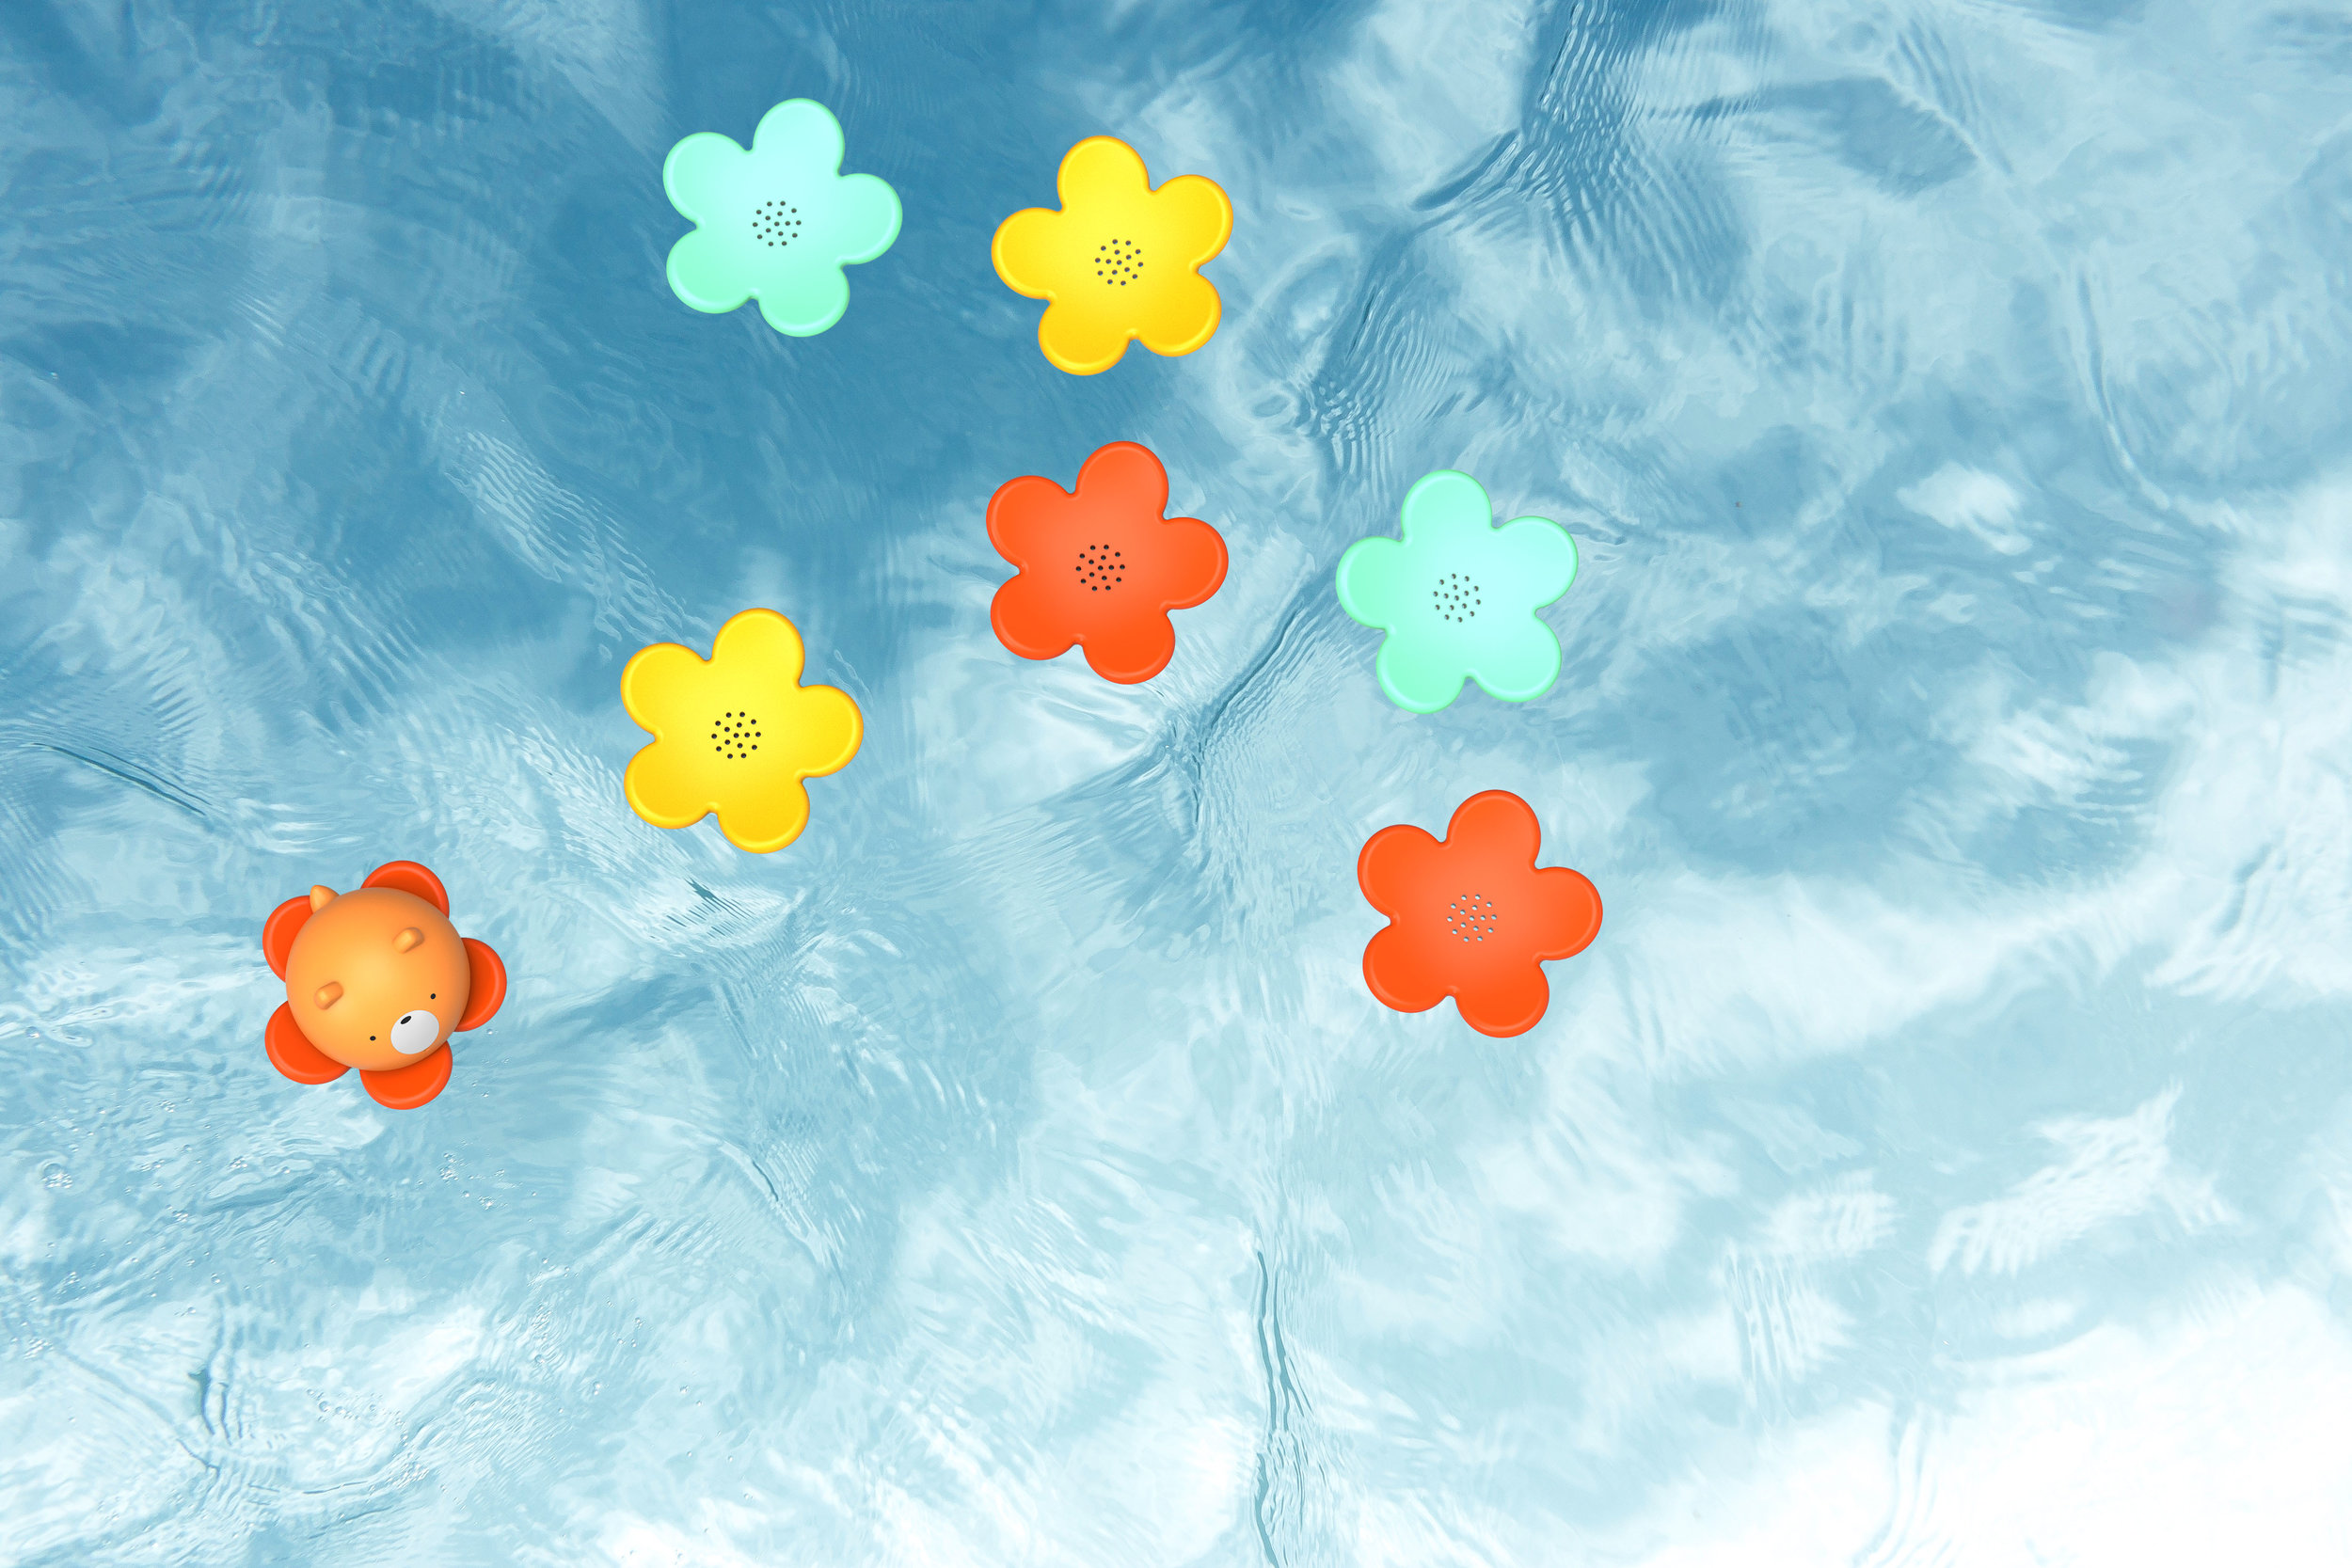 flowers on water.jpg